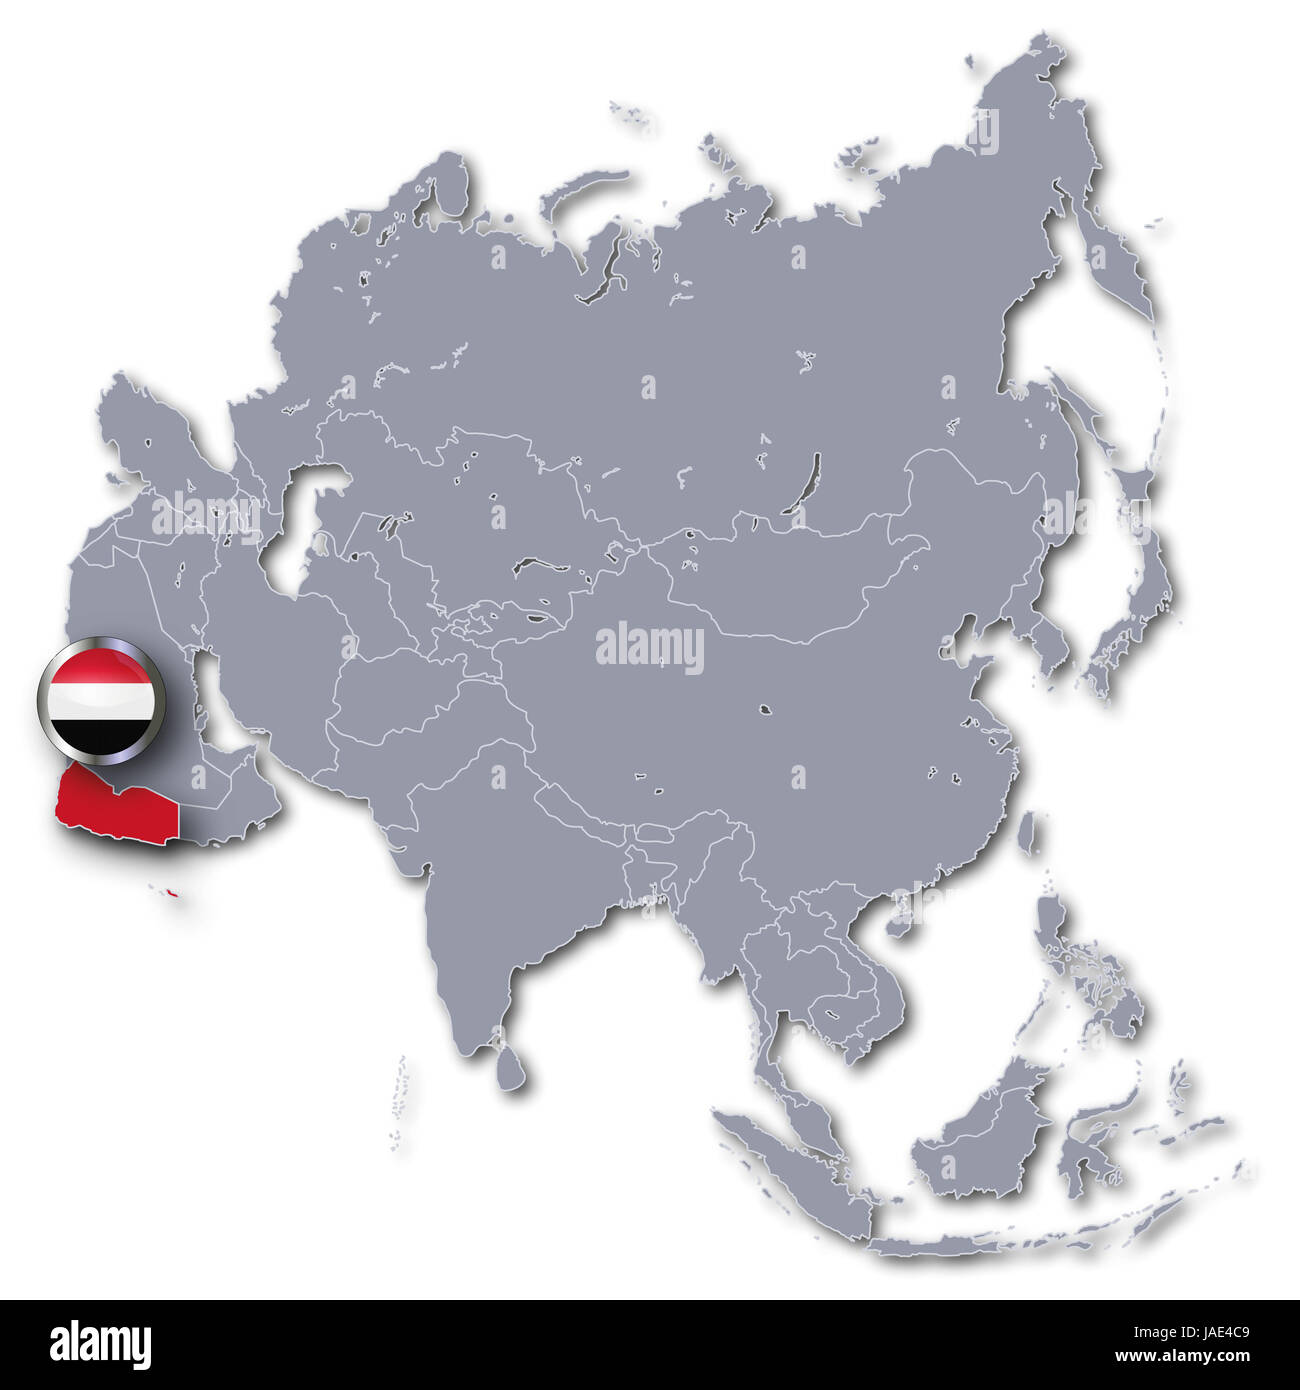 asia map with yemen - Stock Image